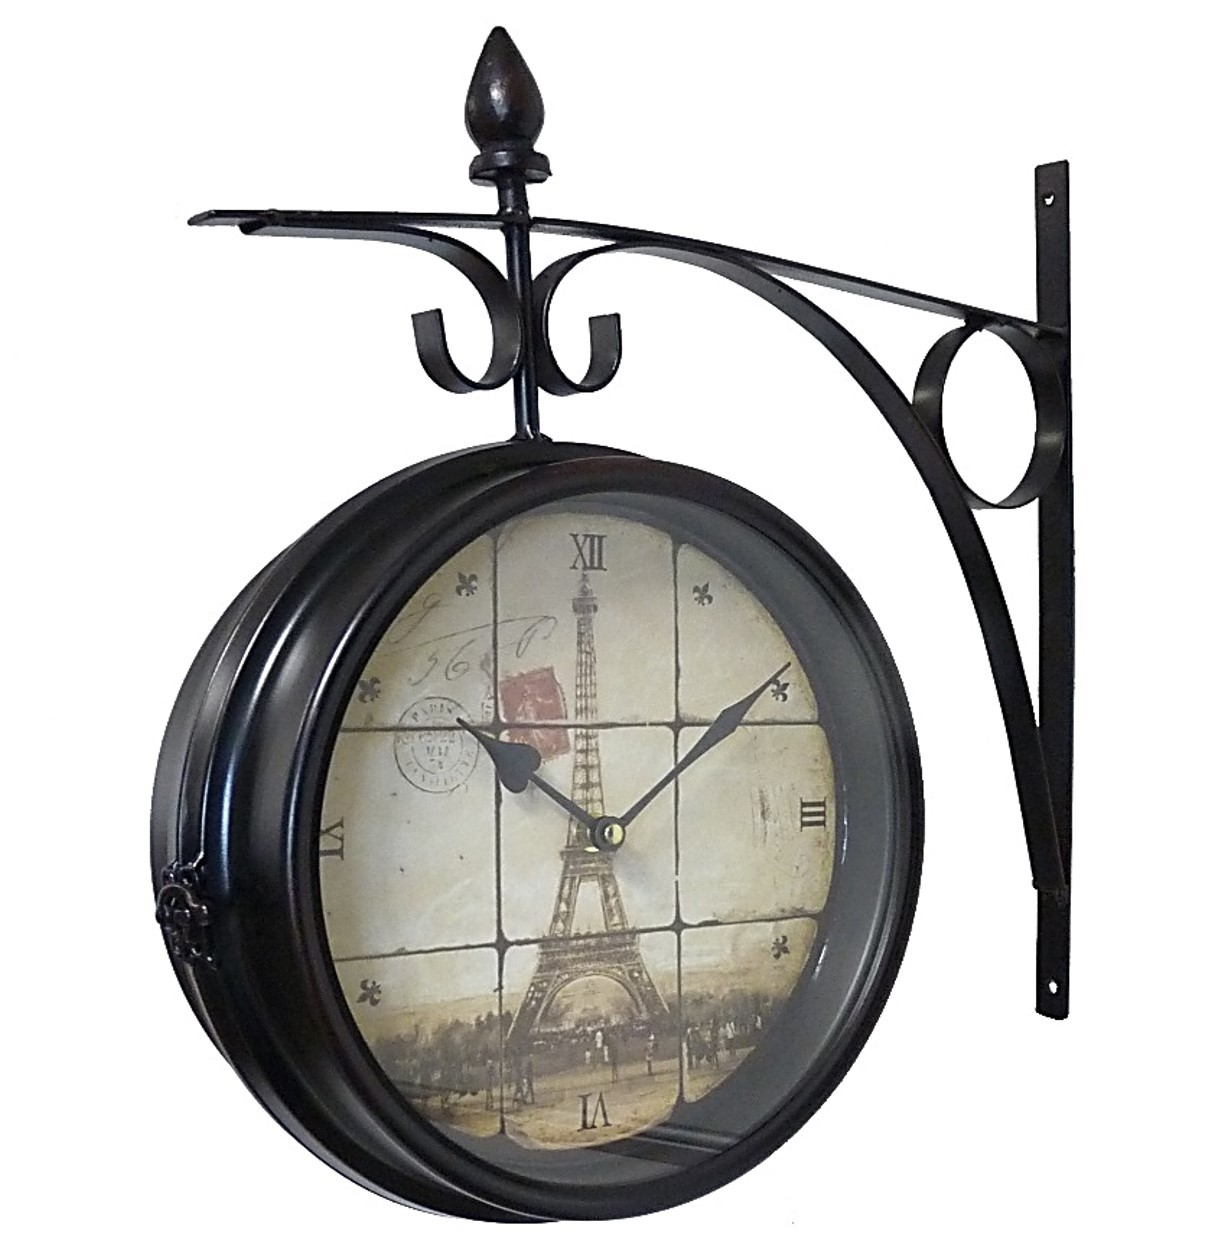 awesome grosse pendule murale concernant grande horloge gante ronde pendule vintage style. Black Bedroom Furniture Sets. Home Design Ideas